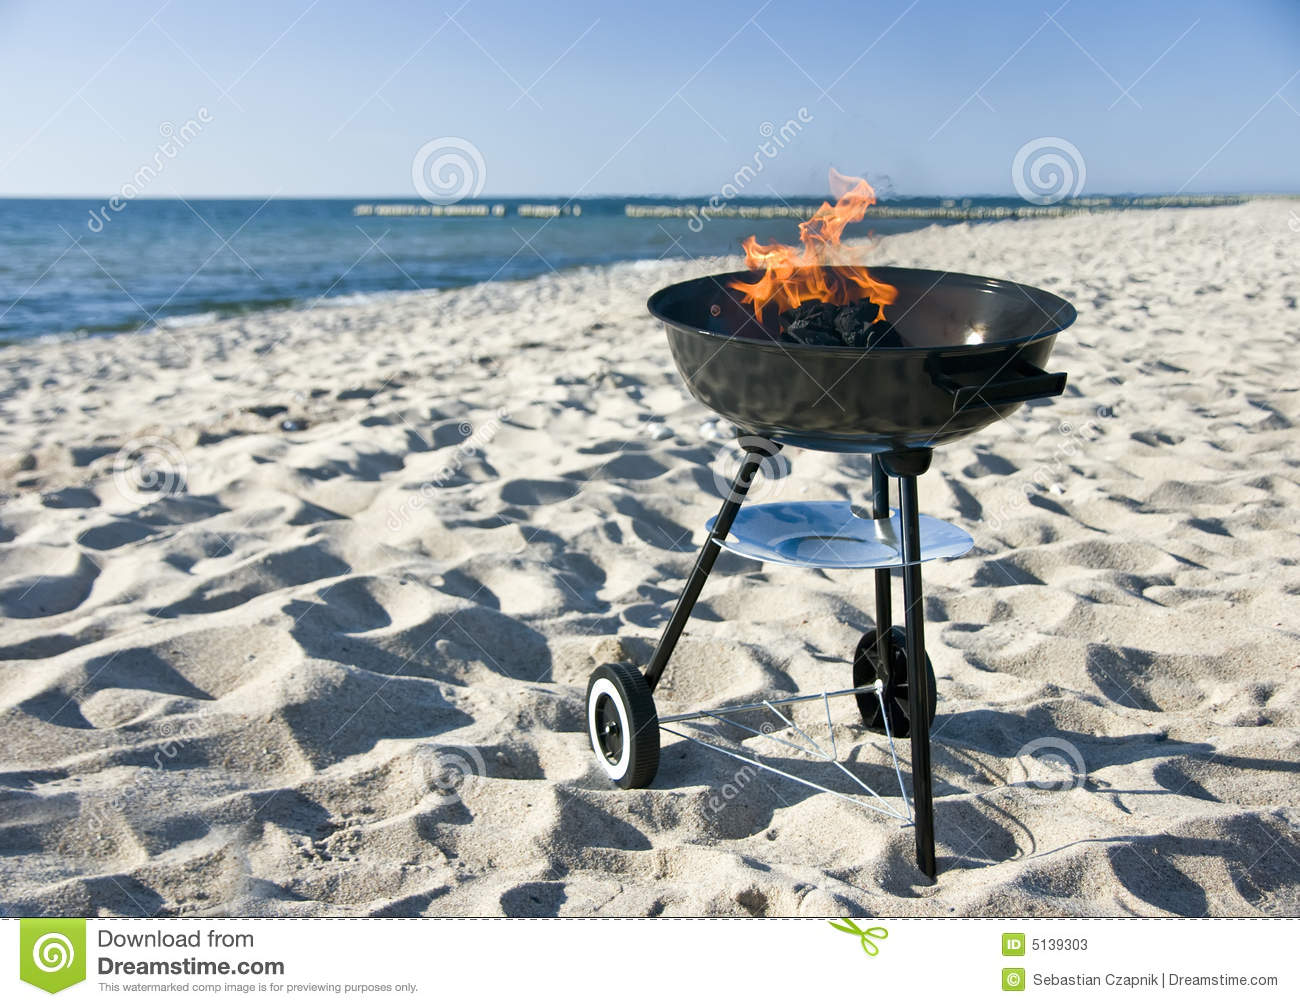 portable barbecue on a beach, the flame burning in it.MORE BEACH ...